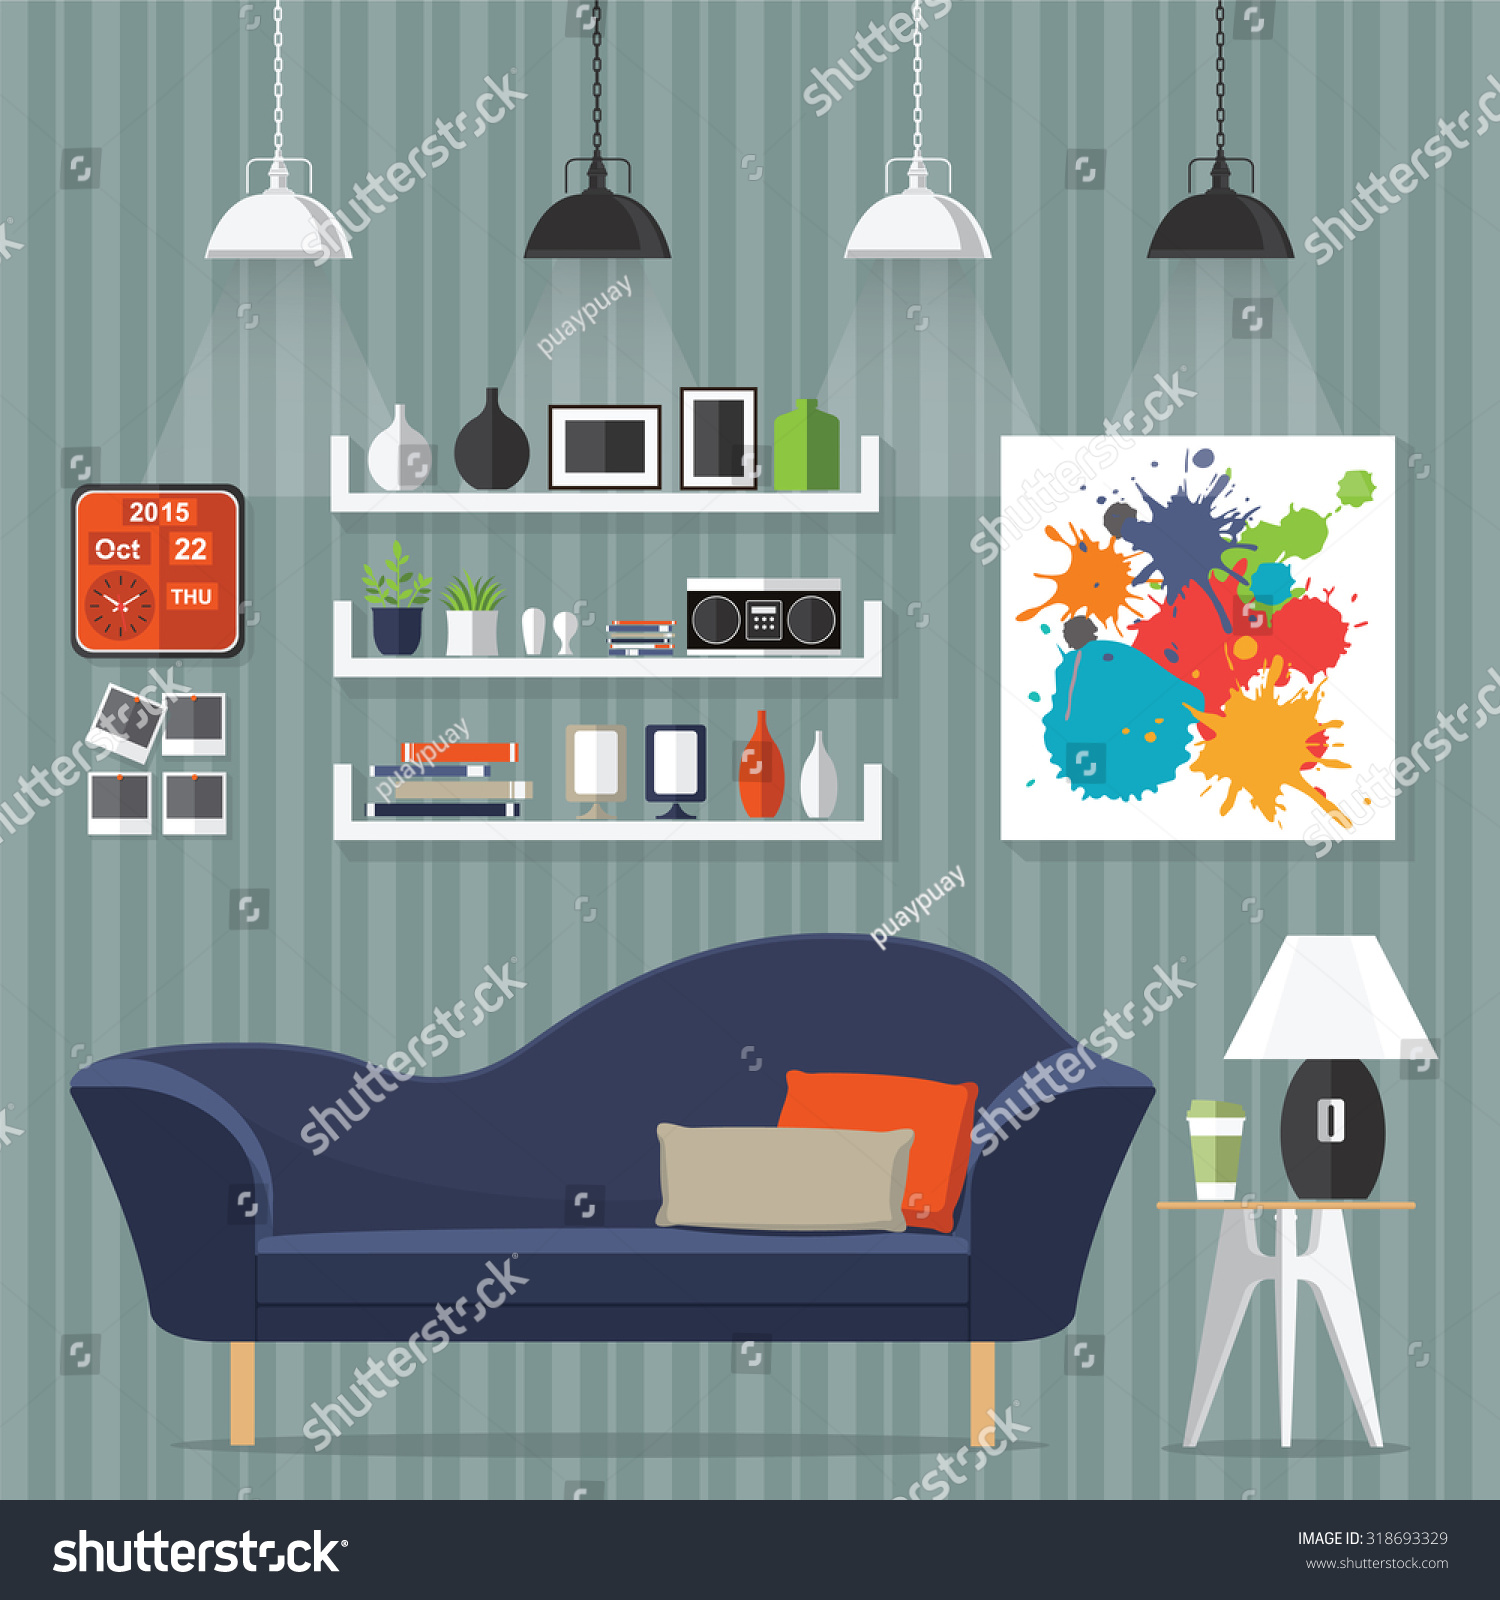 Interior Living Room With Sofa Clock Shelf Books And A Flat Style Vector